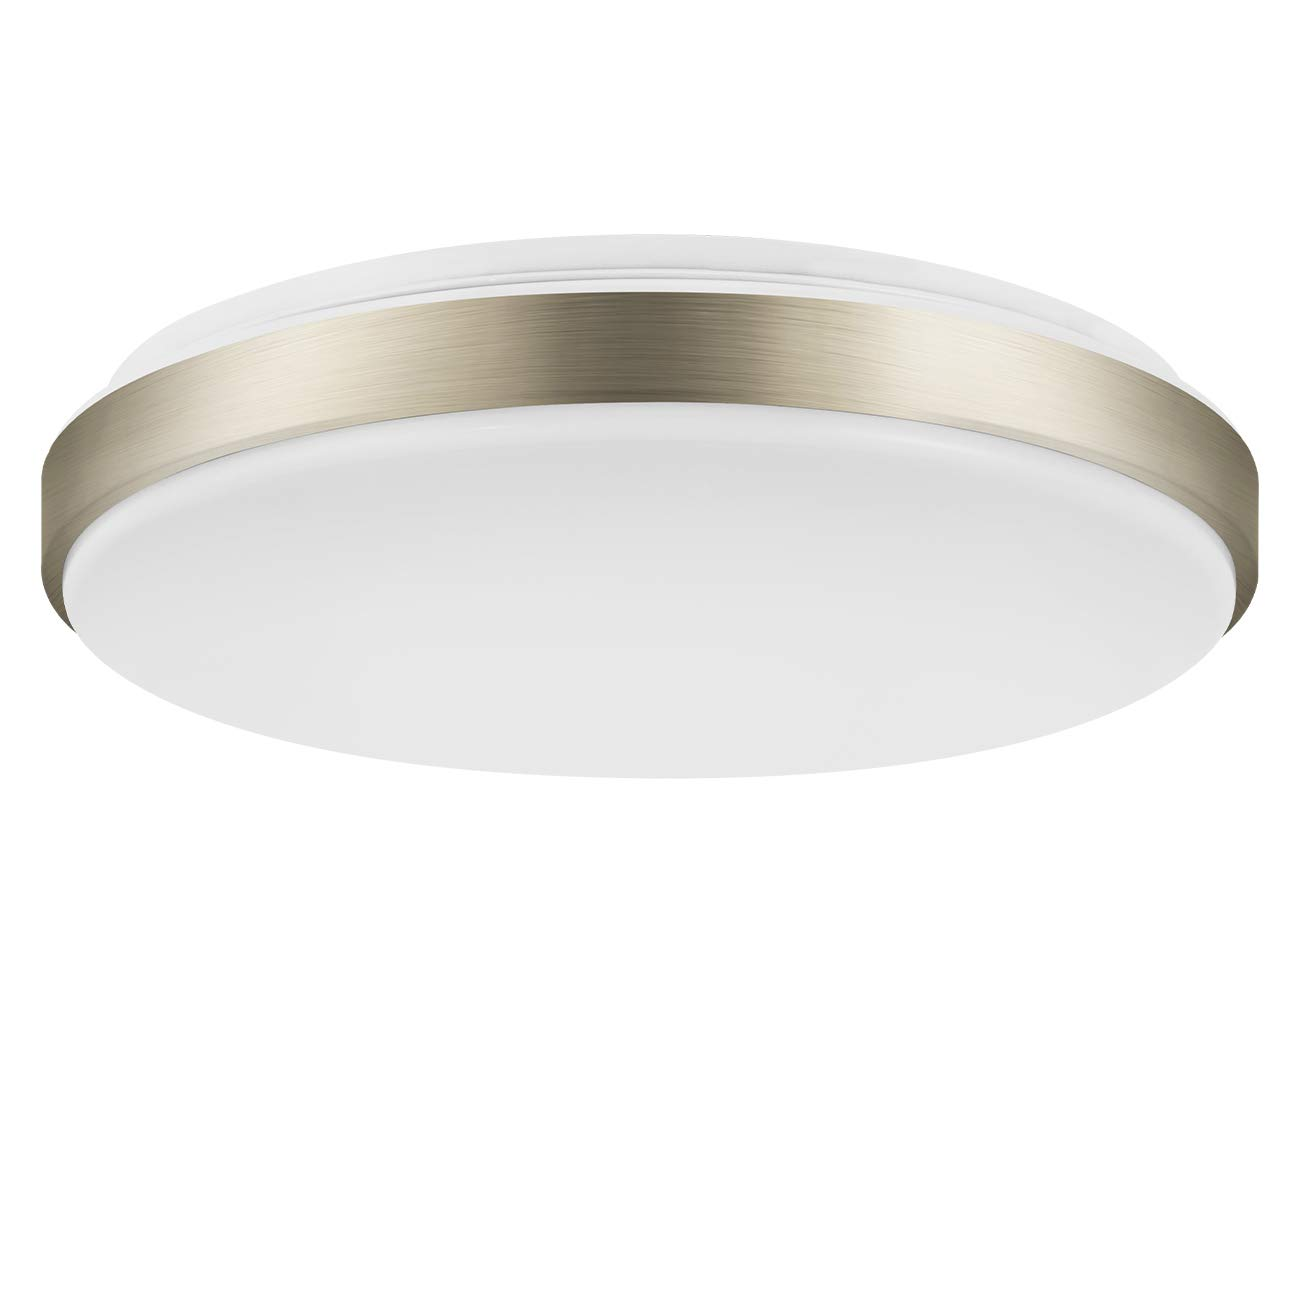 15 inch equivalent 160w flush mount led ceiling light,lvwit 22w dimmable 5000k daylight 1500 lumens round lightingenergy star for kitchen dining room